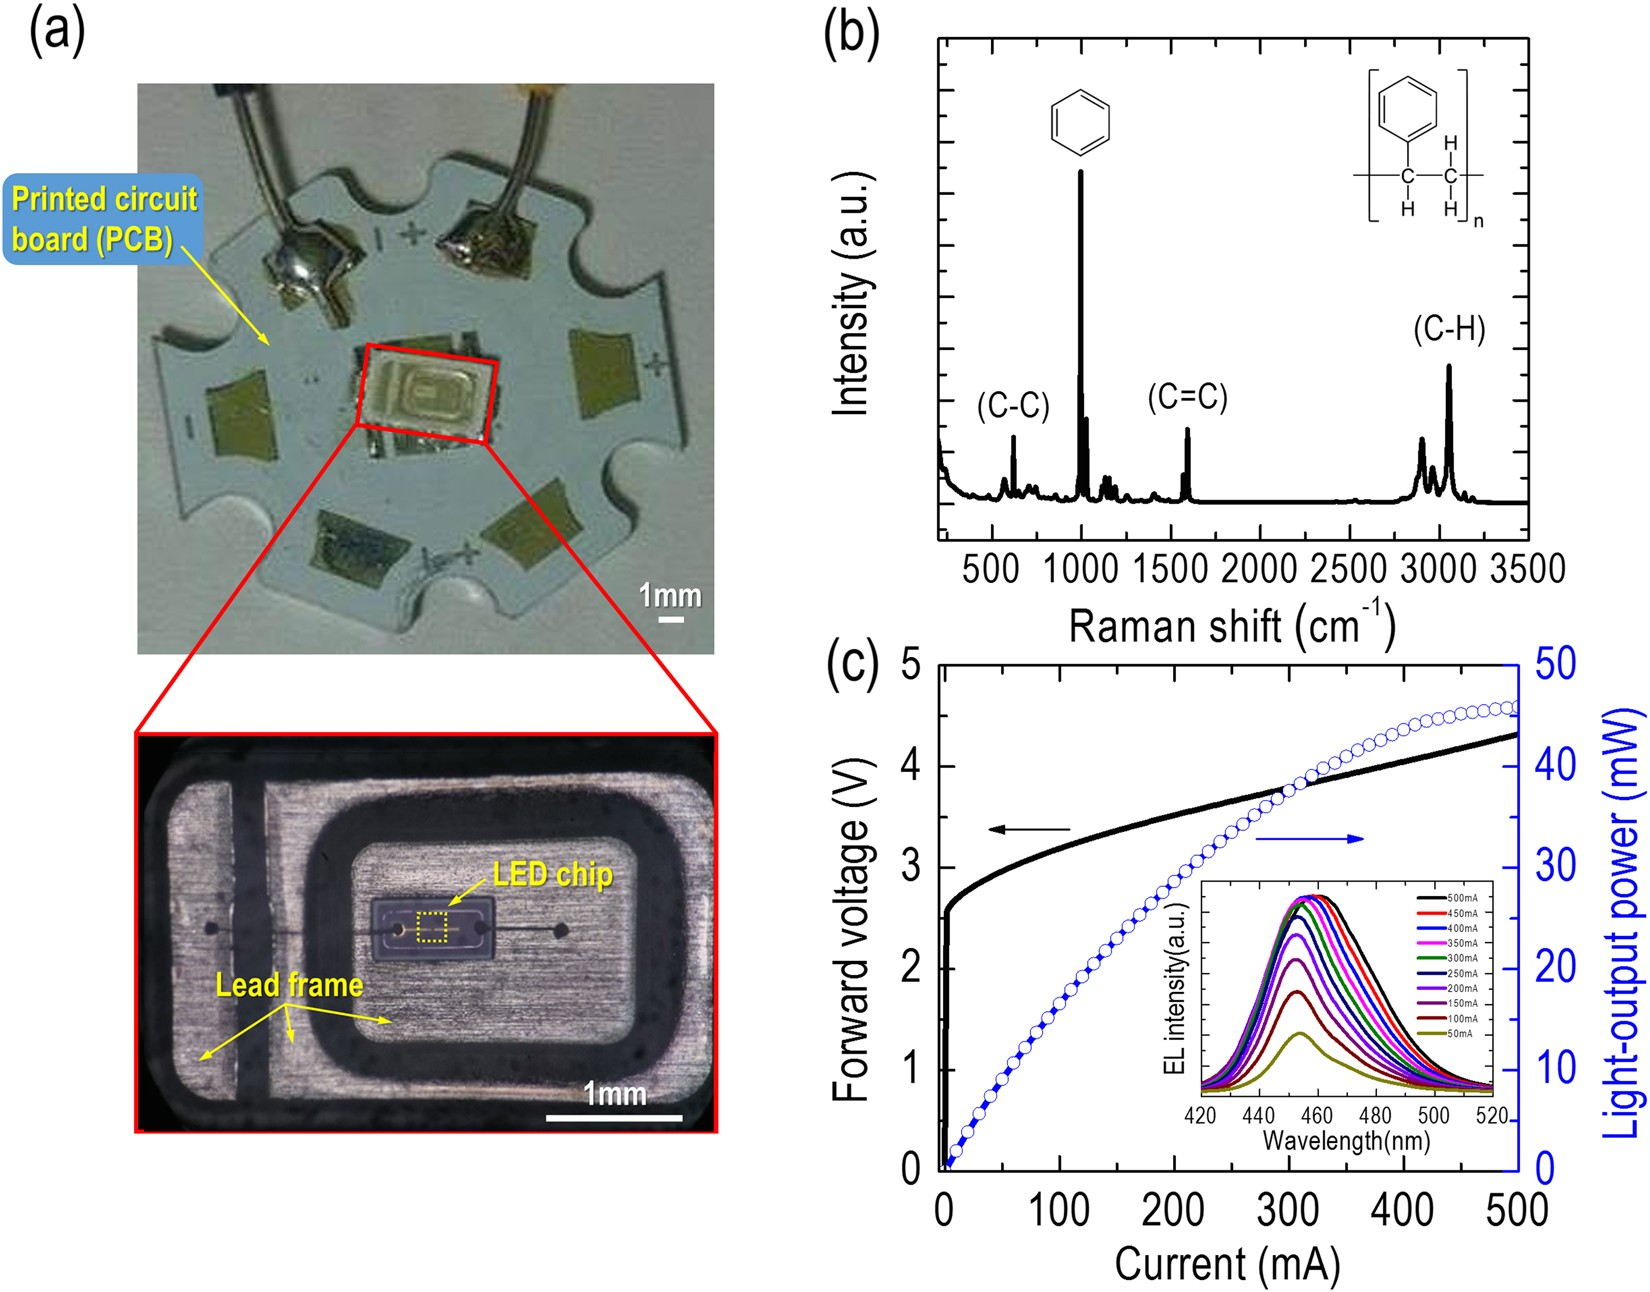 Determination On The Coefficient Of Thermal Expansion In High Power Led Ramping Circuit Ingan Based Light Emitting Diodes By Optical Coherence Tomography Scientific Reports